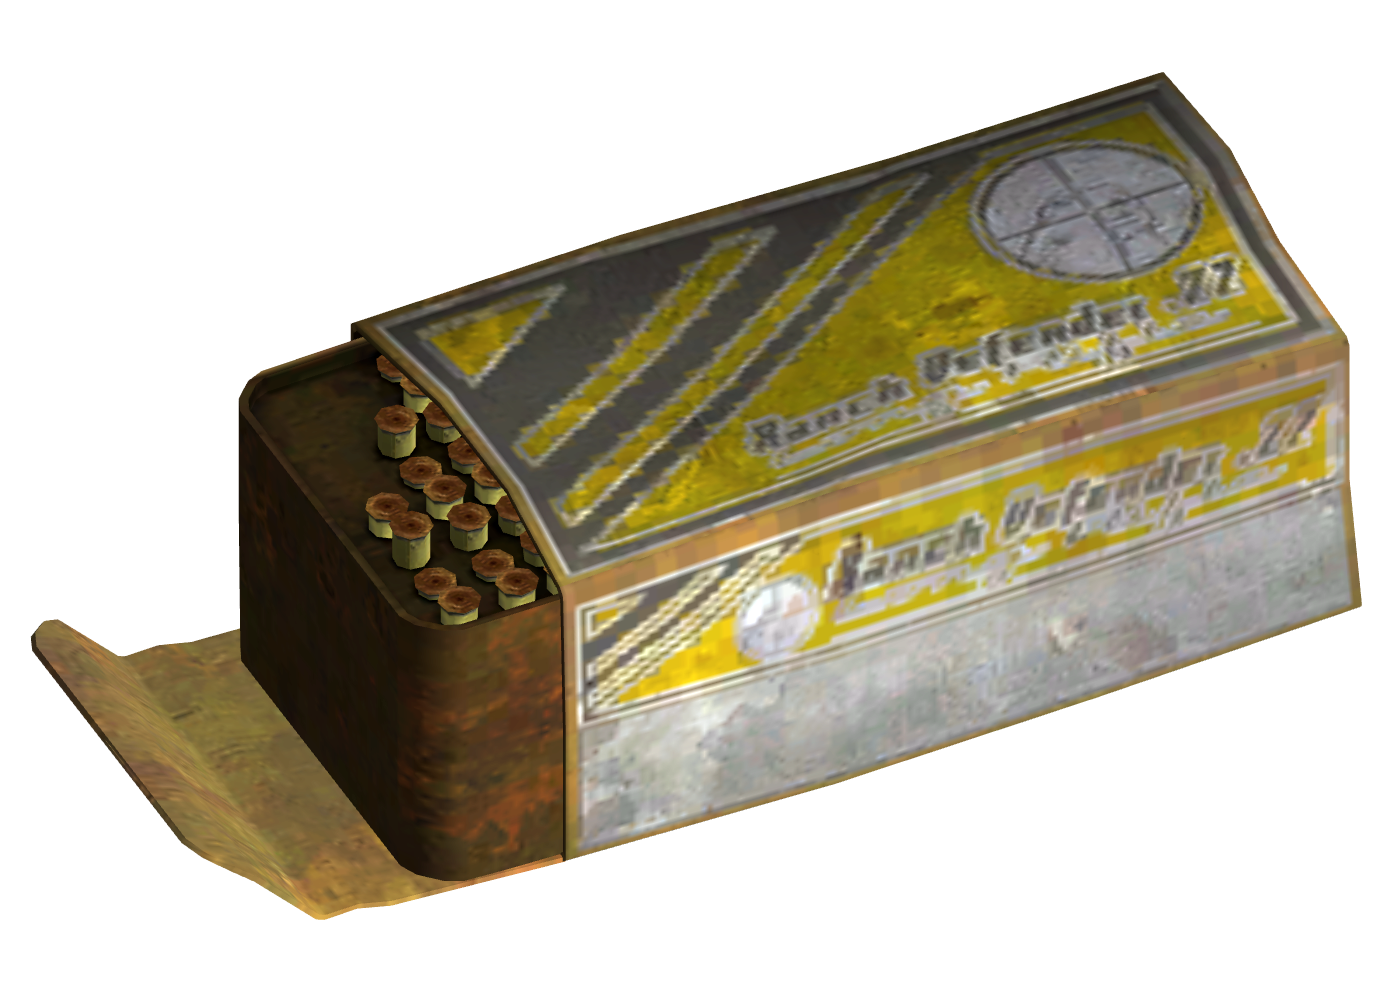 latest?cb=20110213173836 fallout new vegas ammunition fallout wiki fandom powered by wikia fallout new vegas electric box fuse at gsmx.co